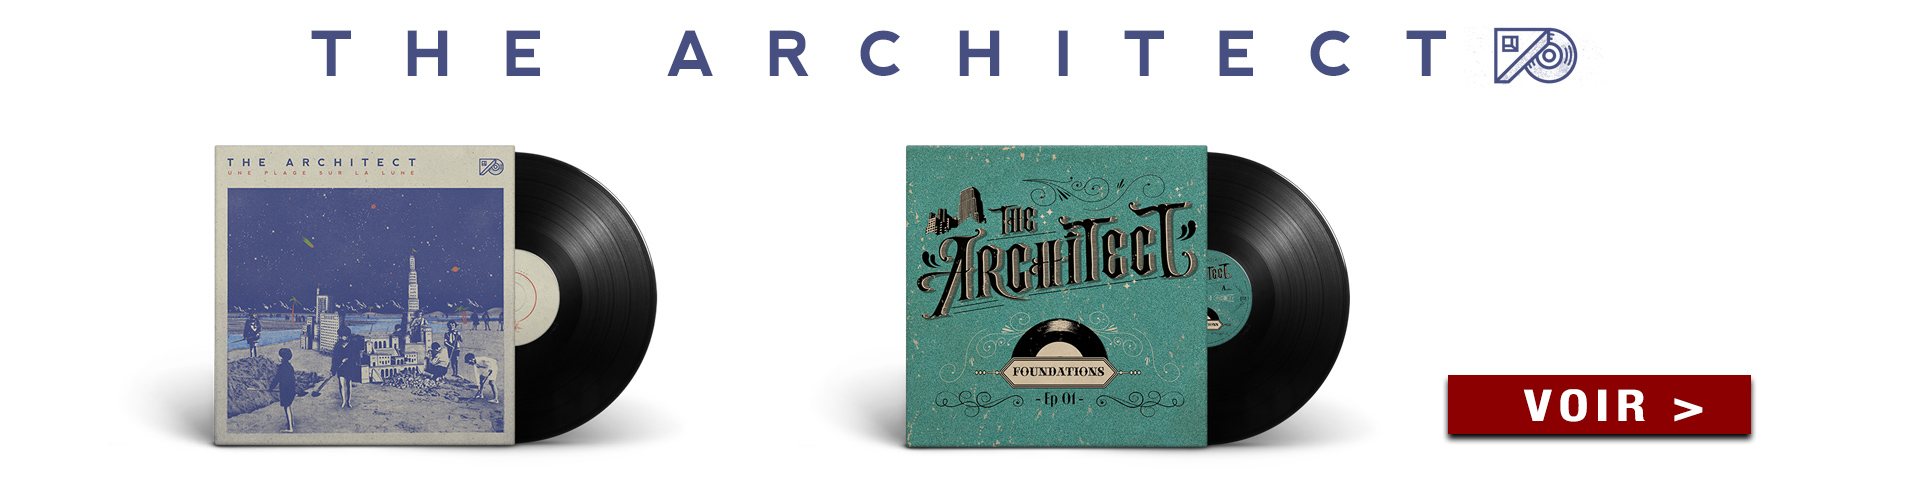 the architect boutique vinyle